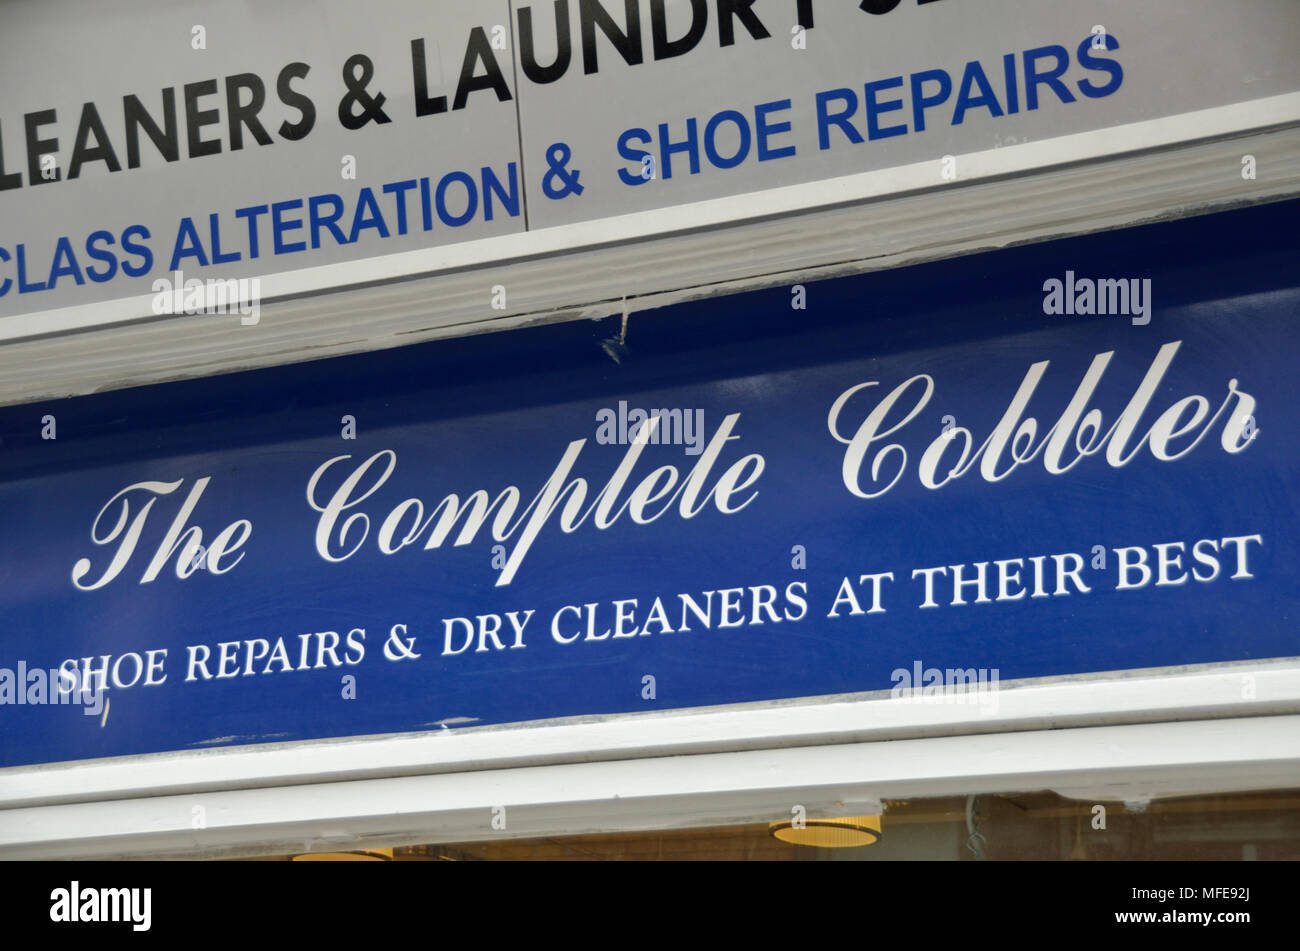 The Complete Cobbler shoe repairs sign. - Stock Image